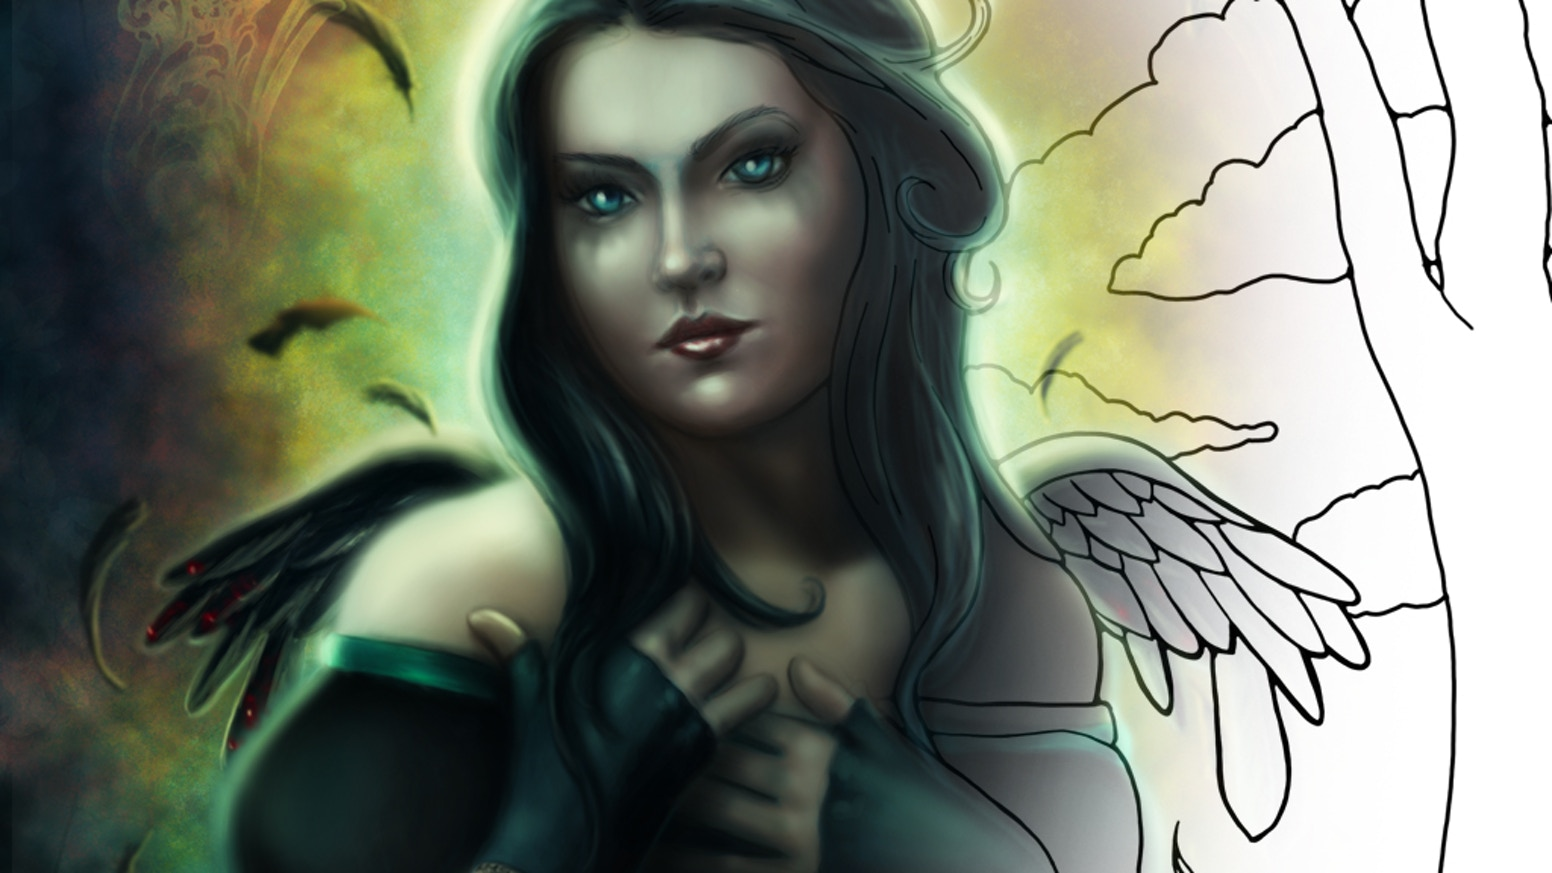 A coloring book of fallen angels, gothic fairies, vampires, werewolves, and more! Oh my!